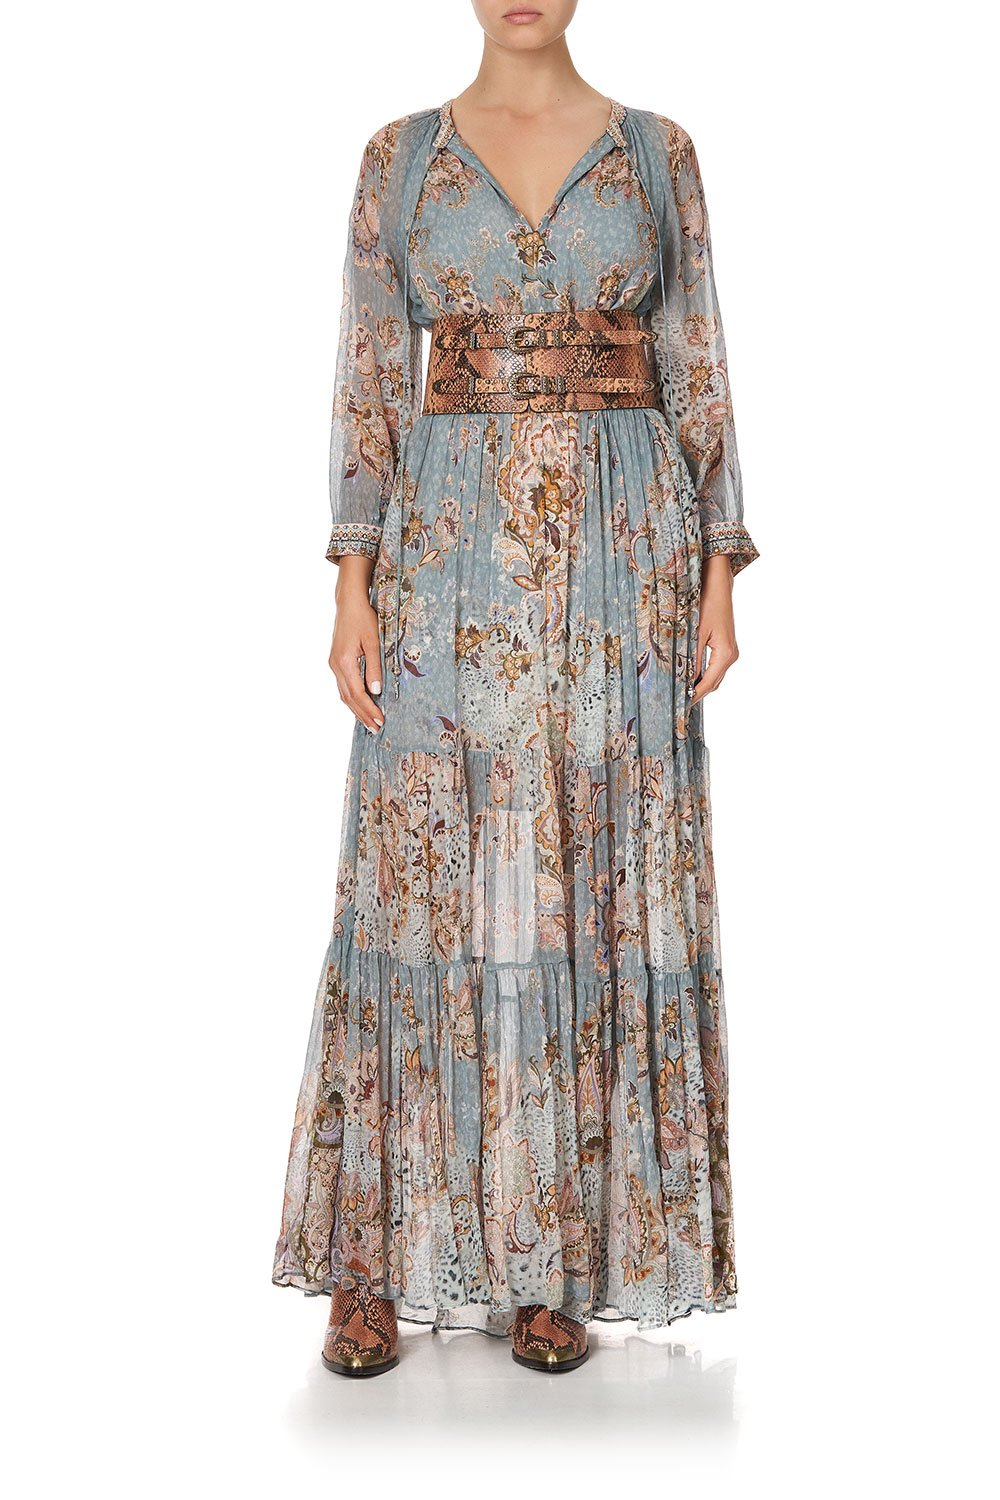 LONG GATHERED PANEL DRESS LE PALAIS DU ZAHIR